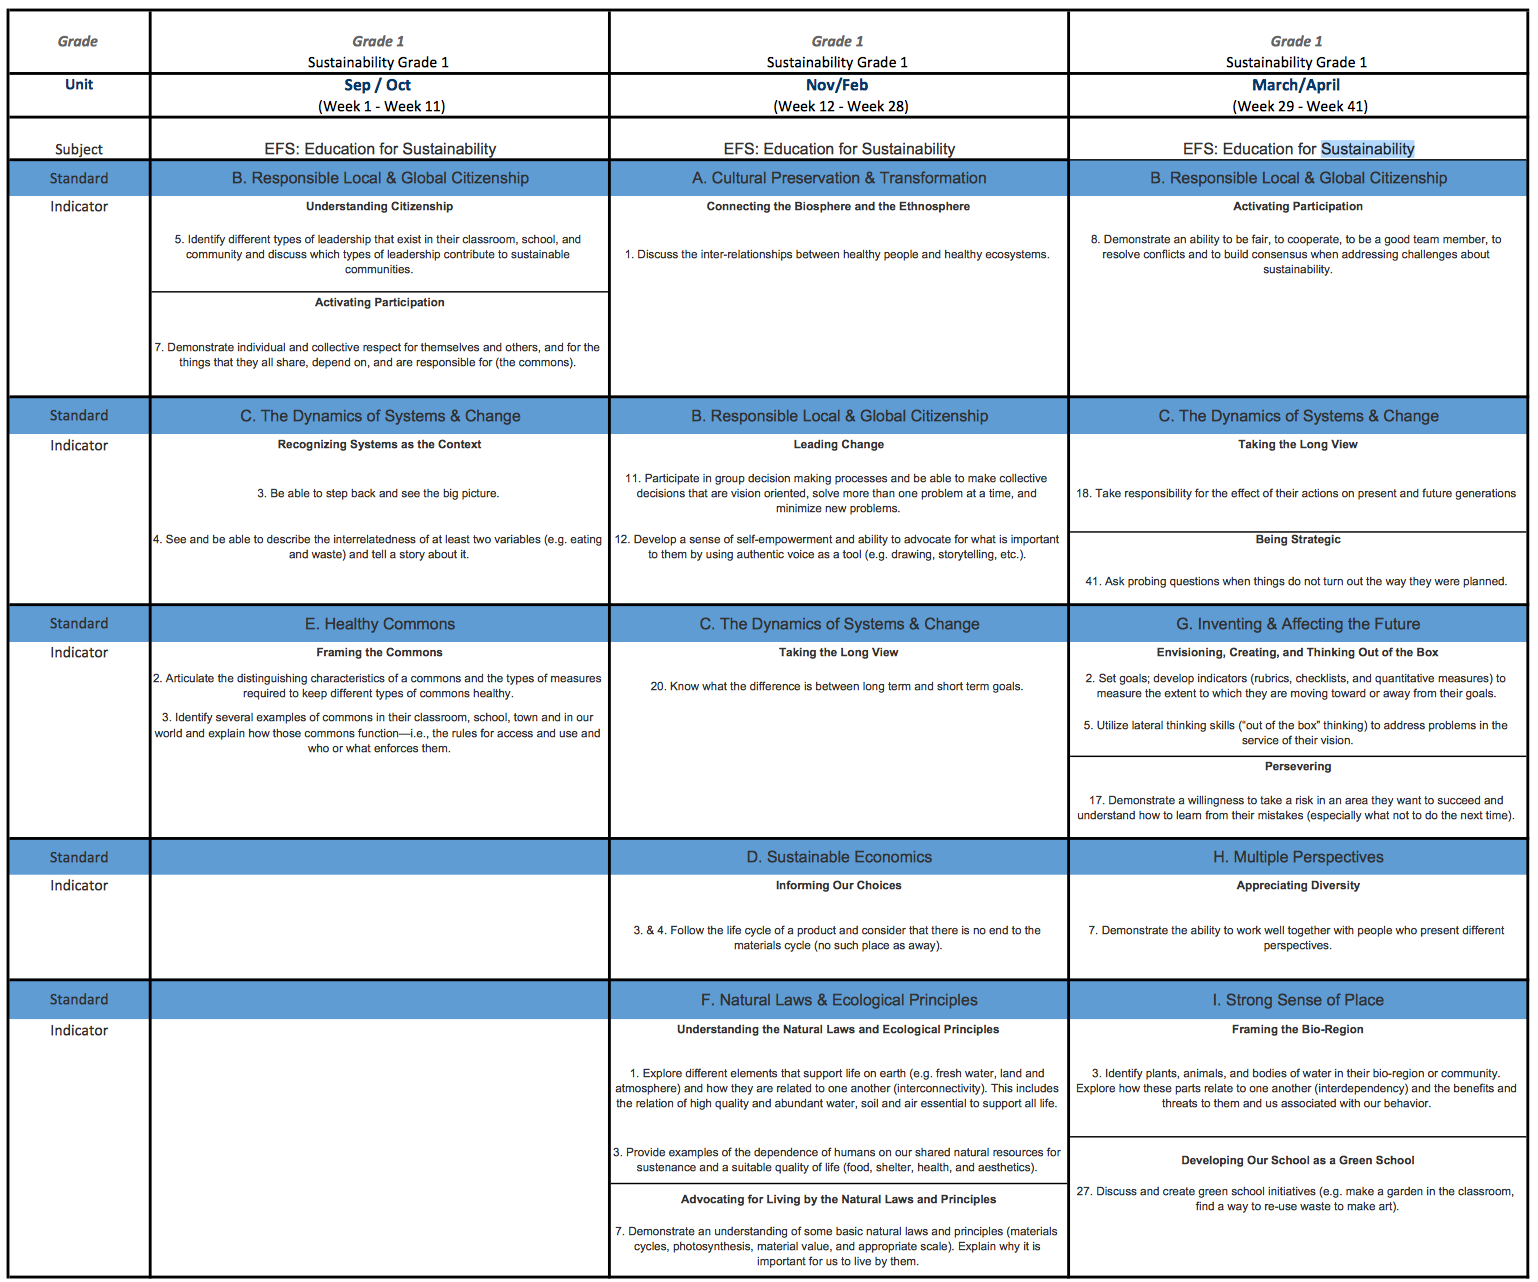 EfS K-12 Scope and Sequence: Standards and Indicators (Page 1)